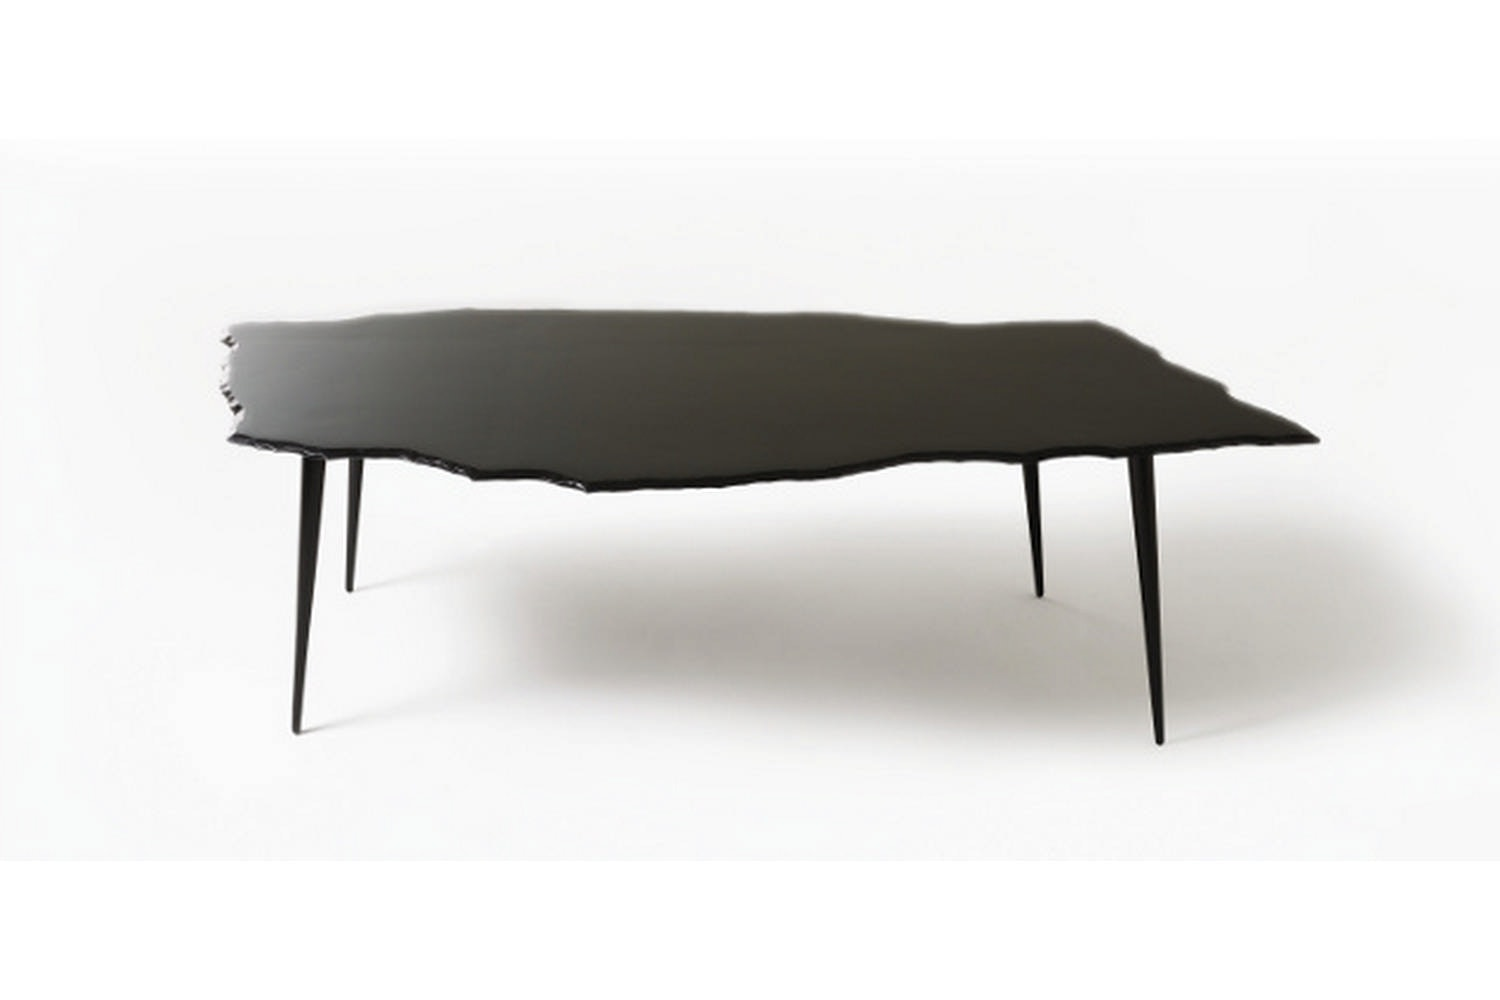 Egeo Table by Jacopo Foggini for Edra